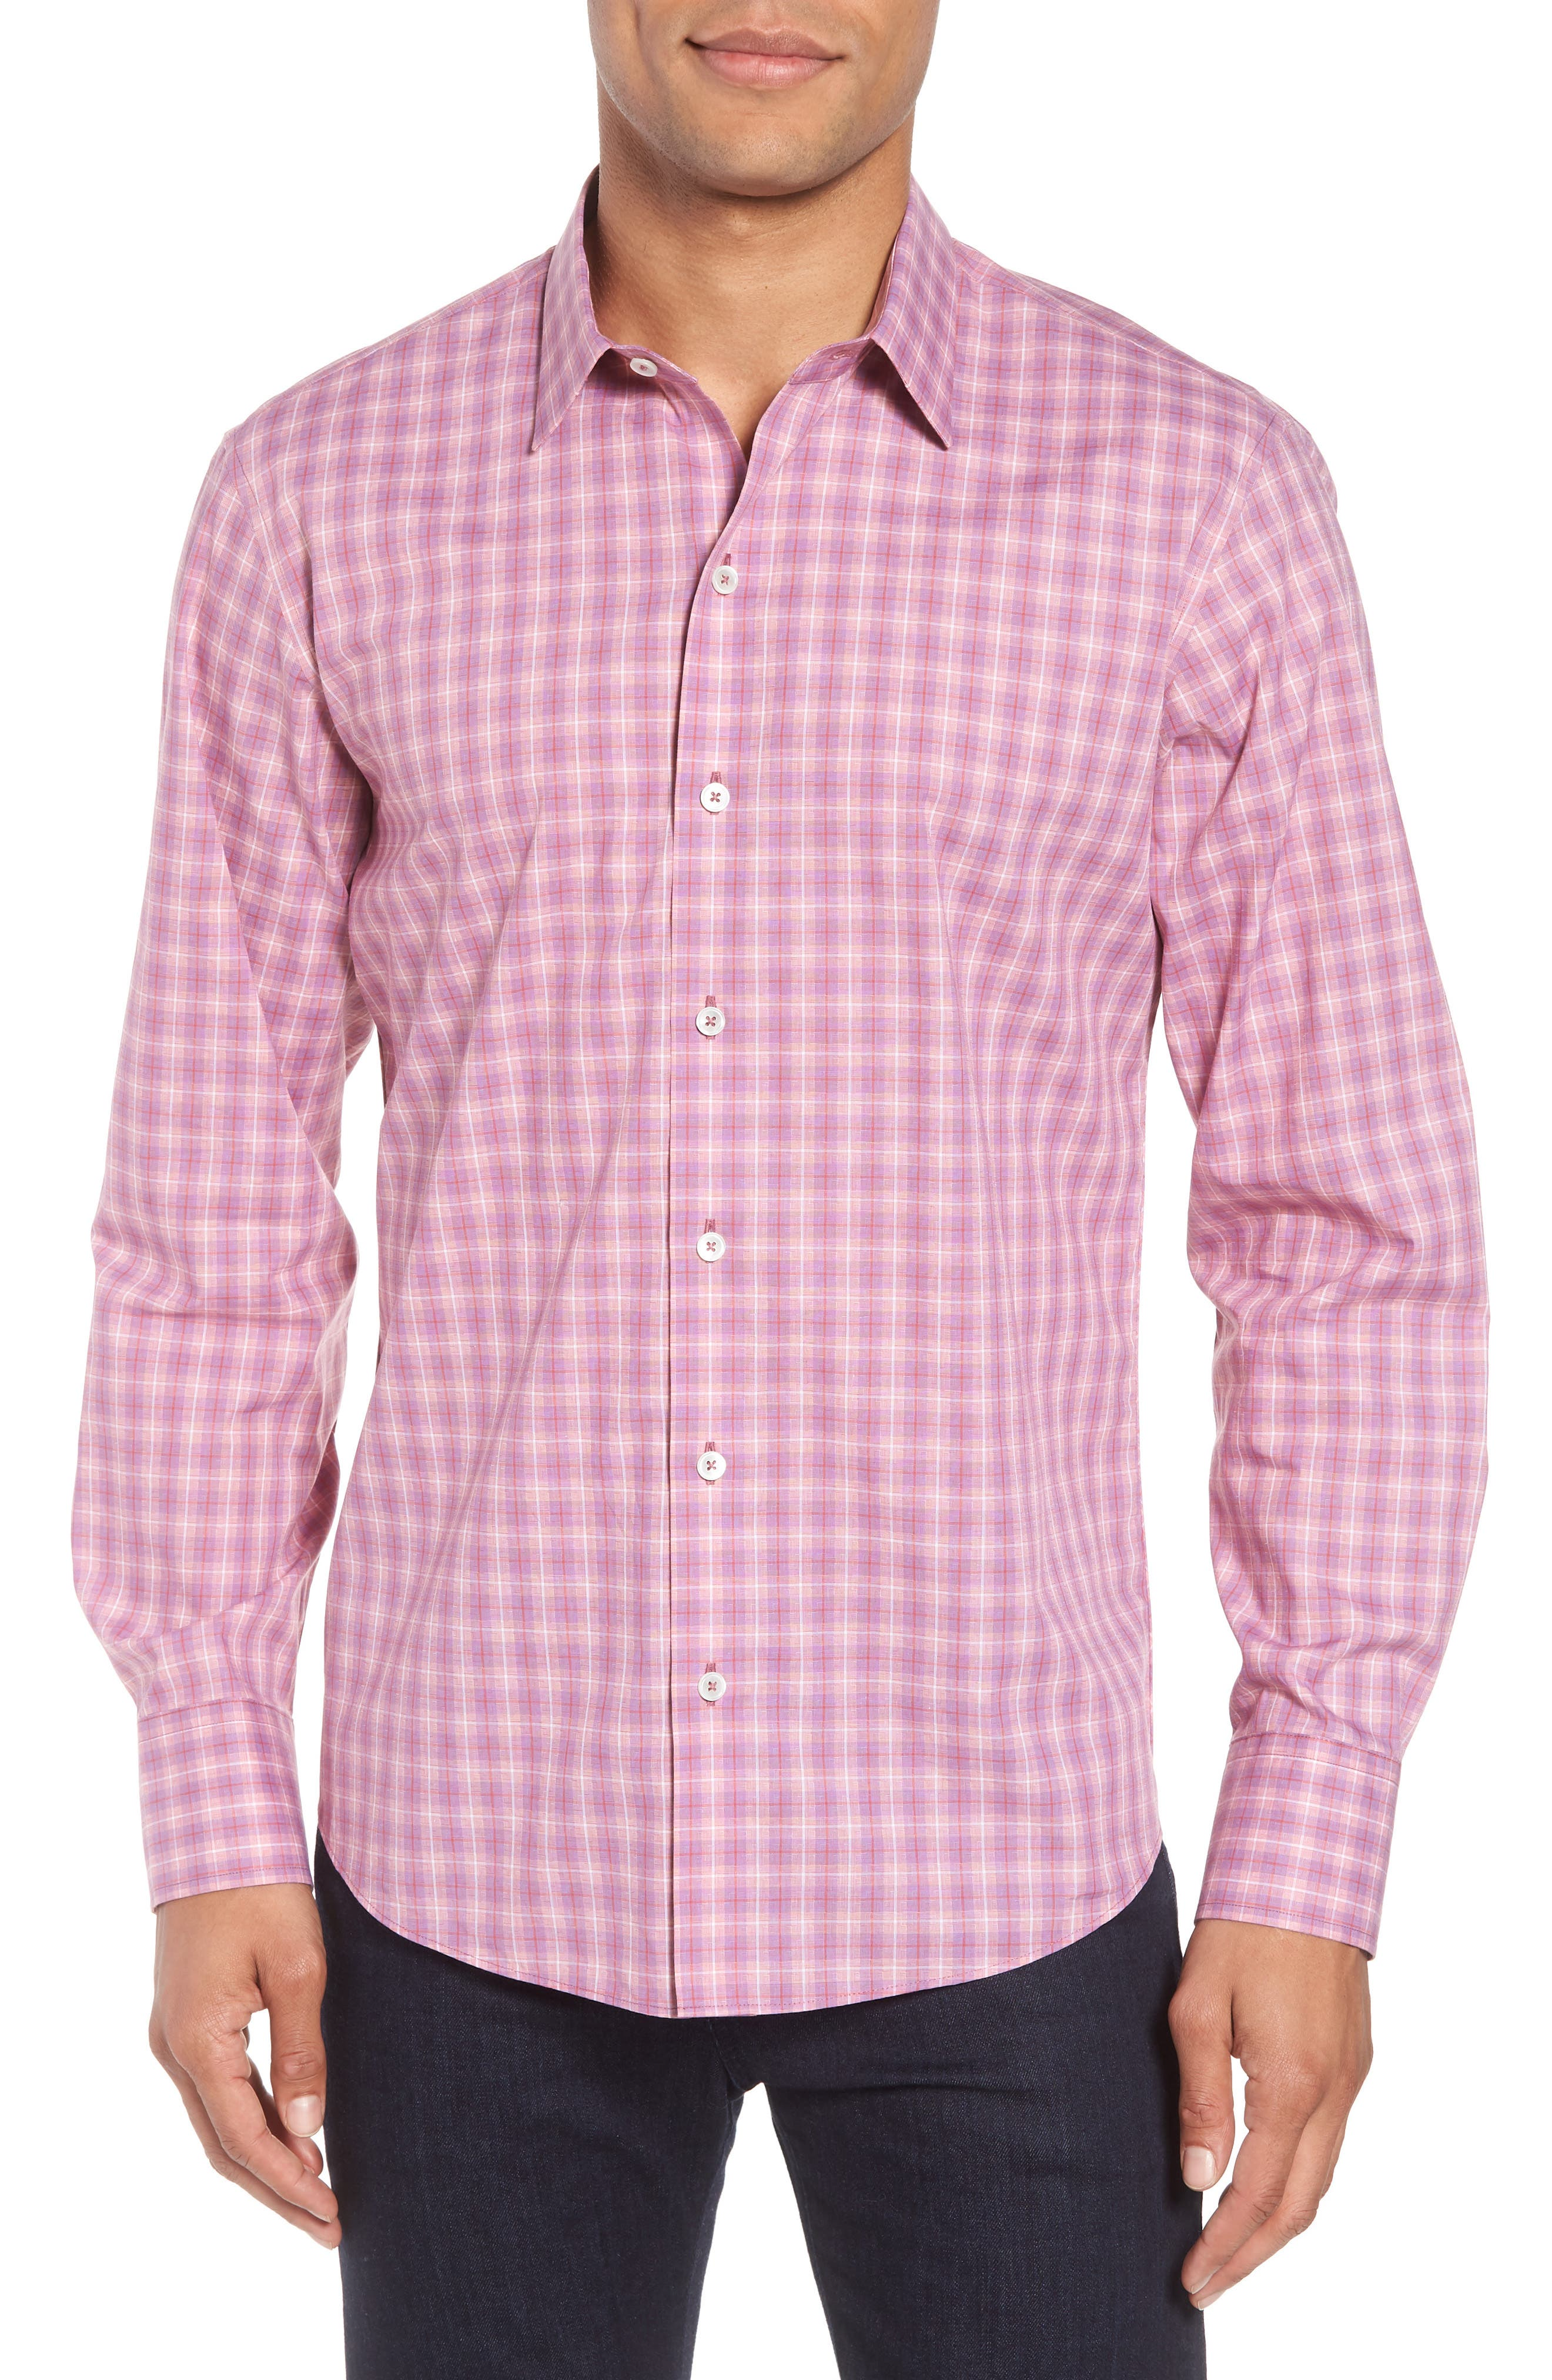 Duran Regular Fit Sport Shirt,                             Main thumbnail 1, color,                             650